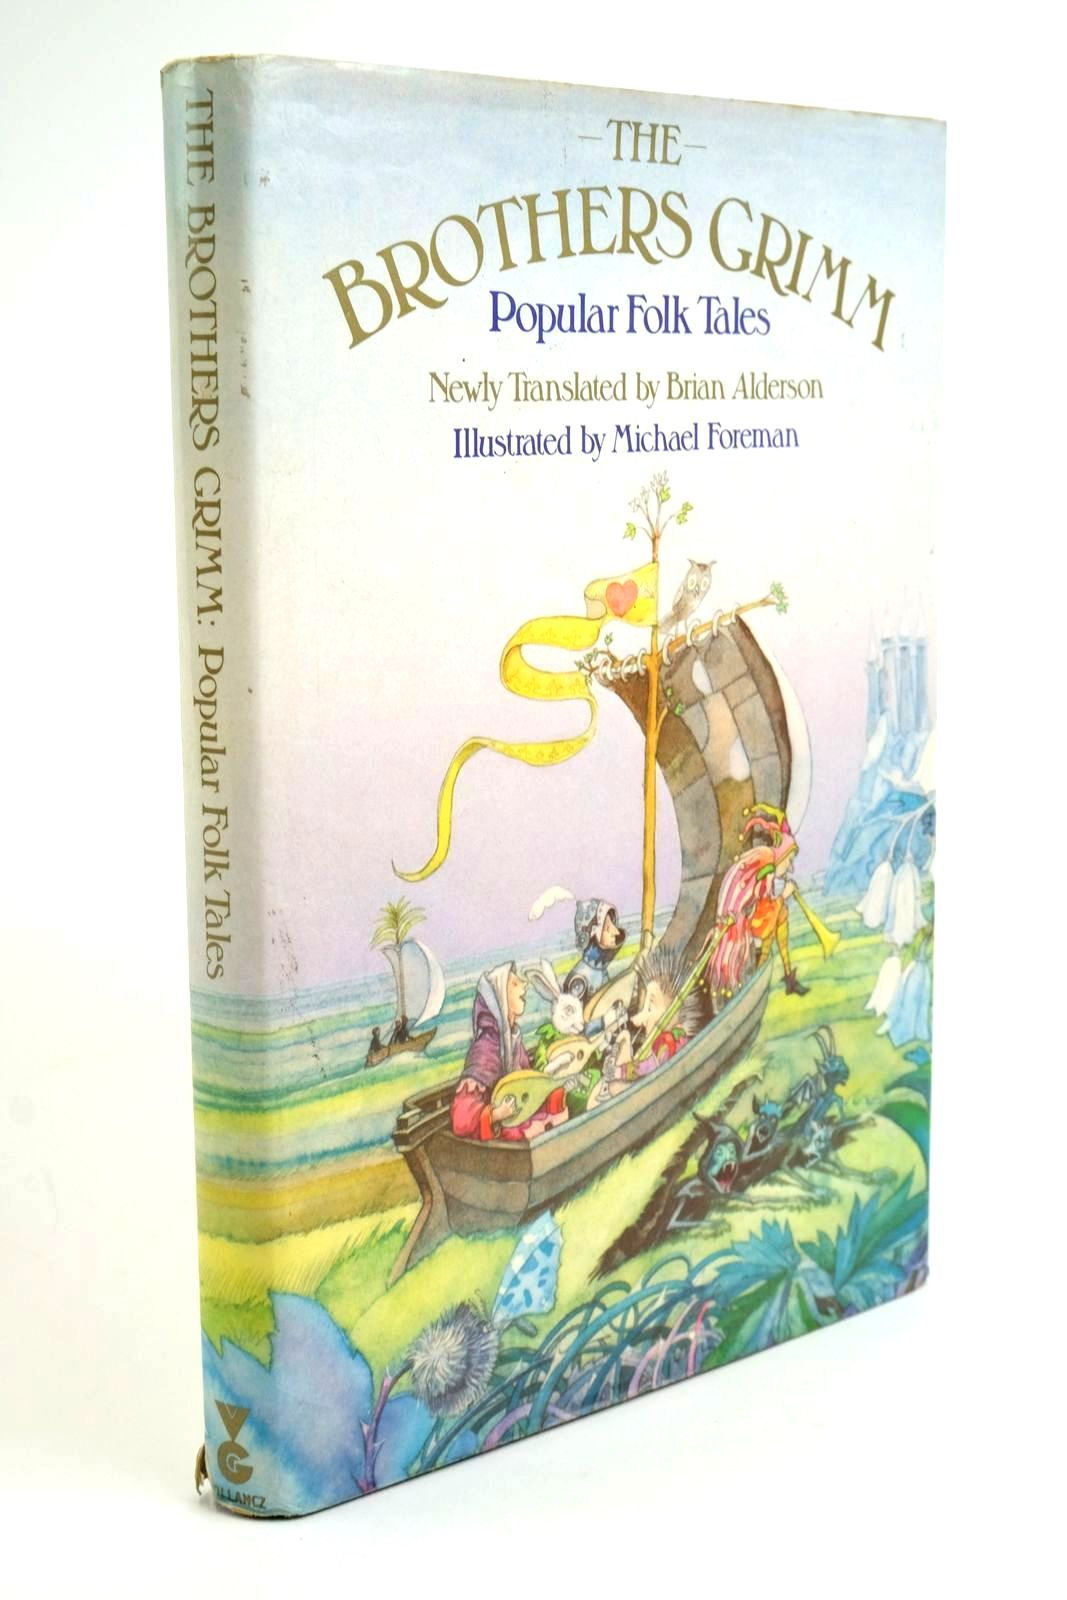 Photo of THE BROTHERS GRIMM - POPULAR FOLK TALES- Stock Number: 1321674